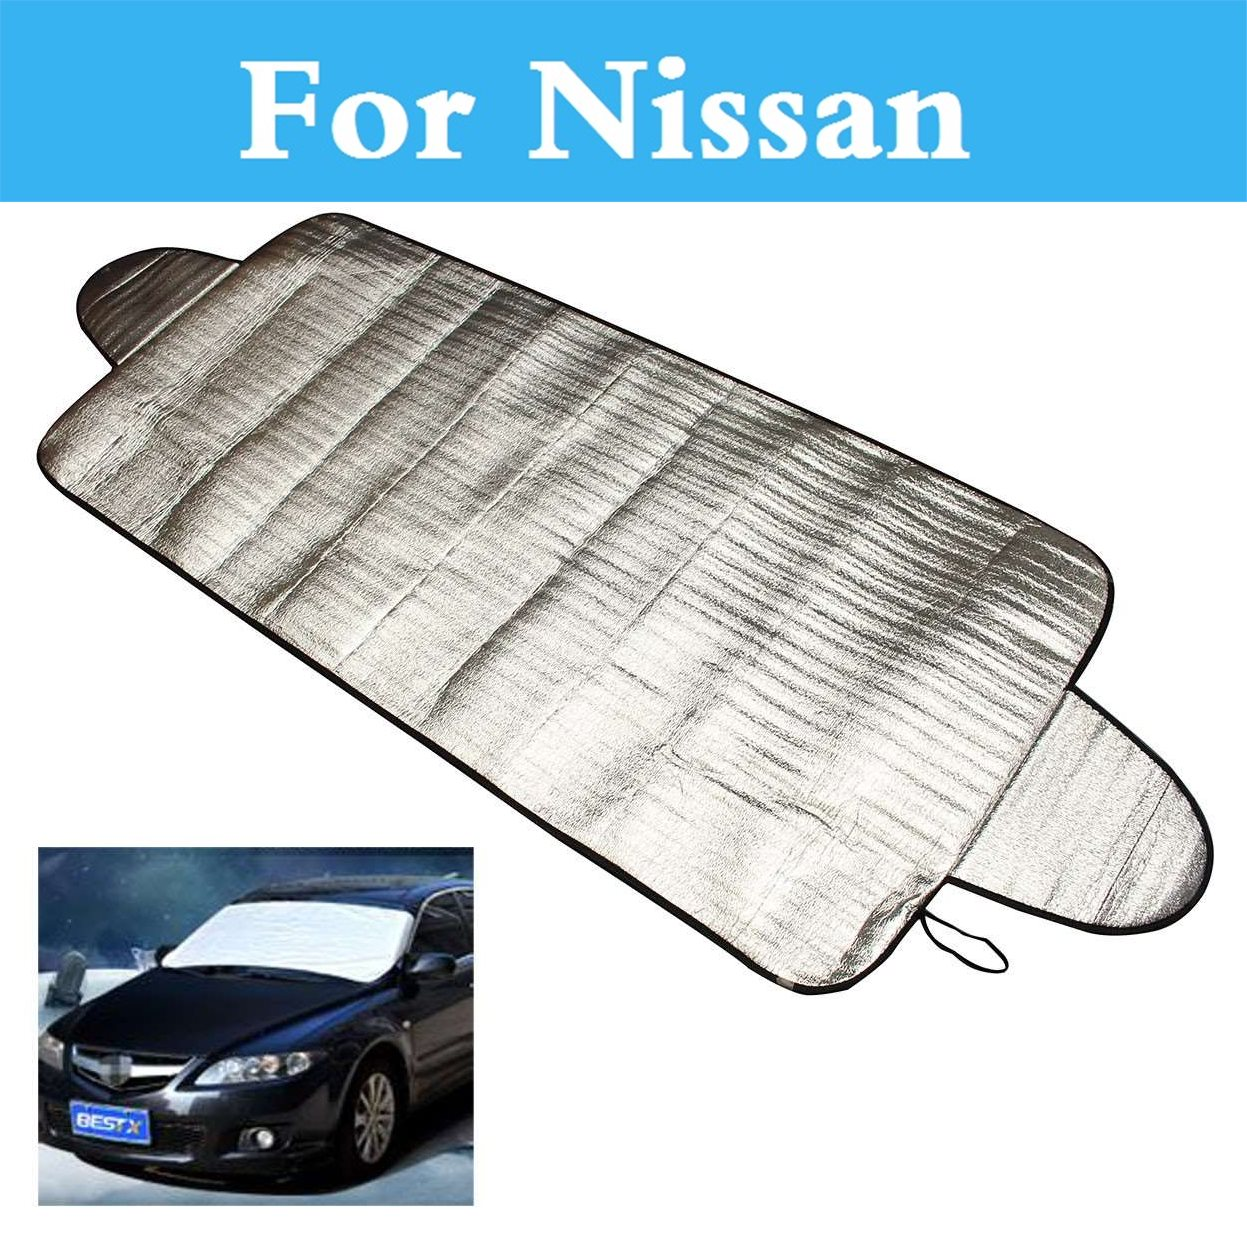 Car Windshield Cover Snow Ice Frost Visor Shade Sunshade For Nissan Sylphy Cedric Cima Crew Dualis ExpeGloria GT-R Juke Bluebird